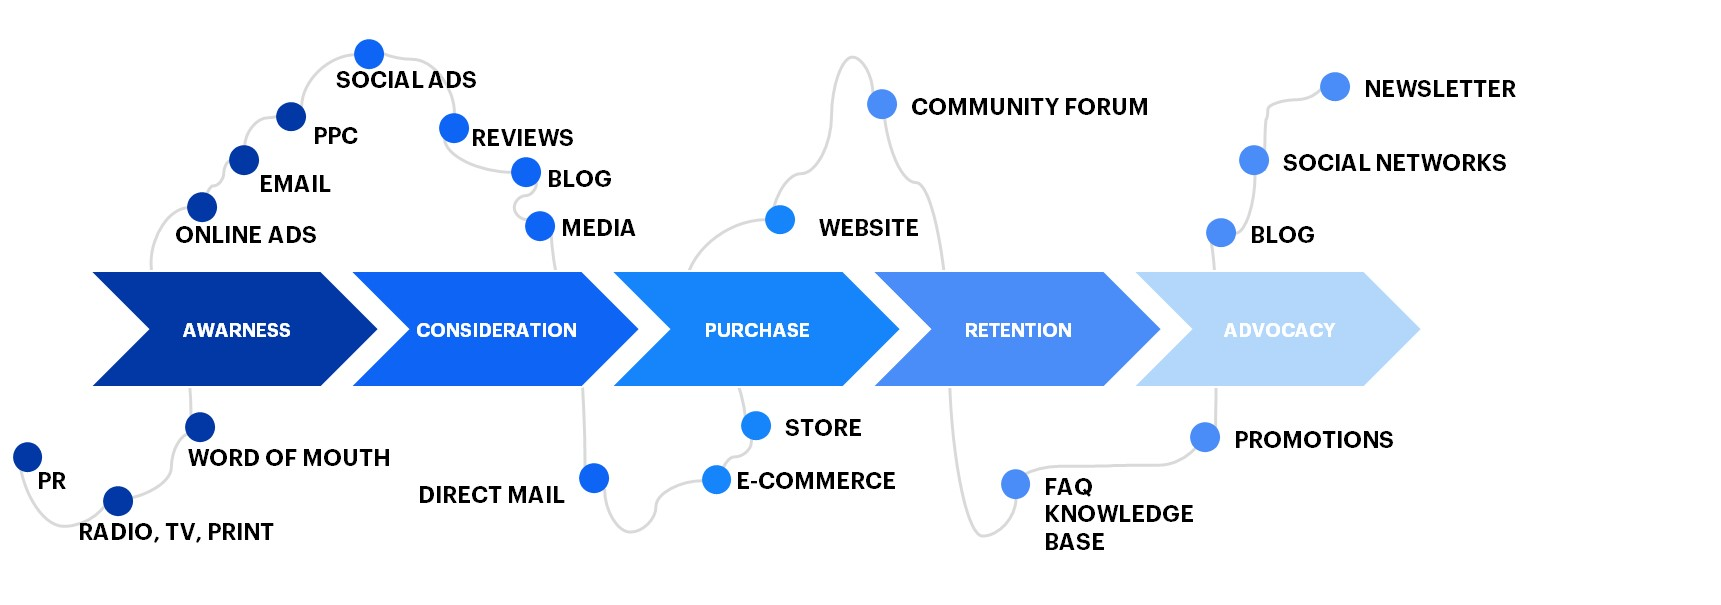 Customer journey map in buying process